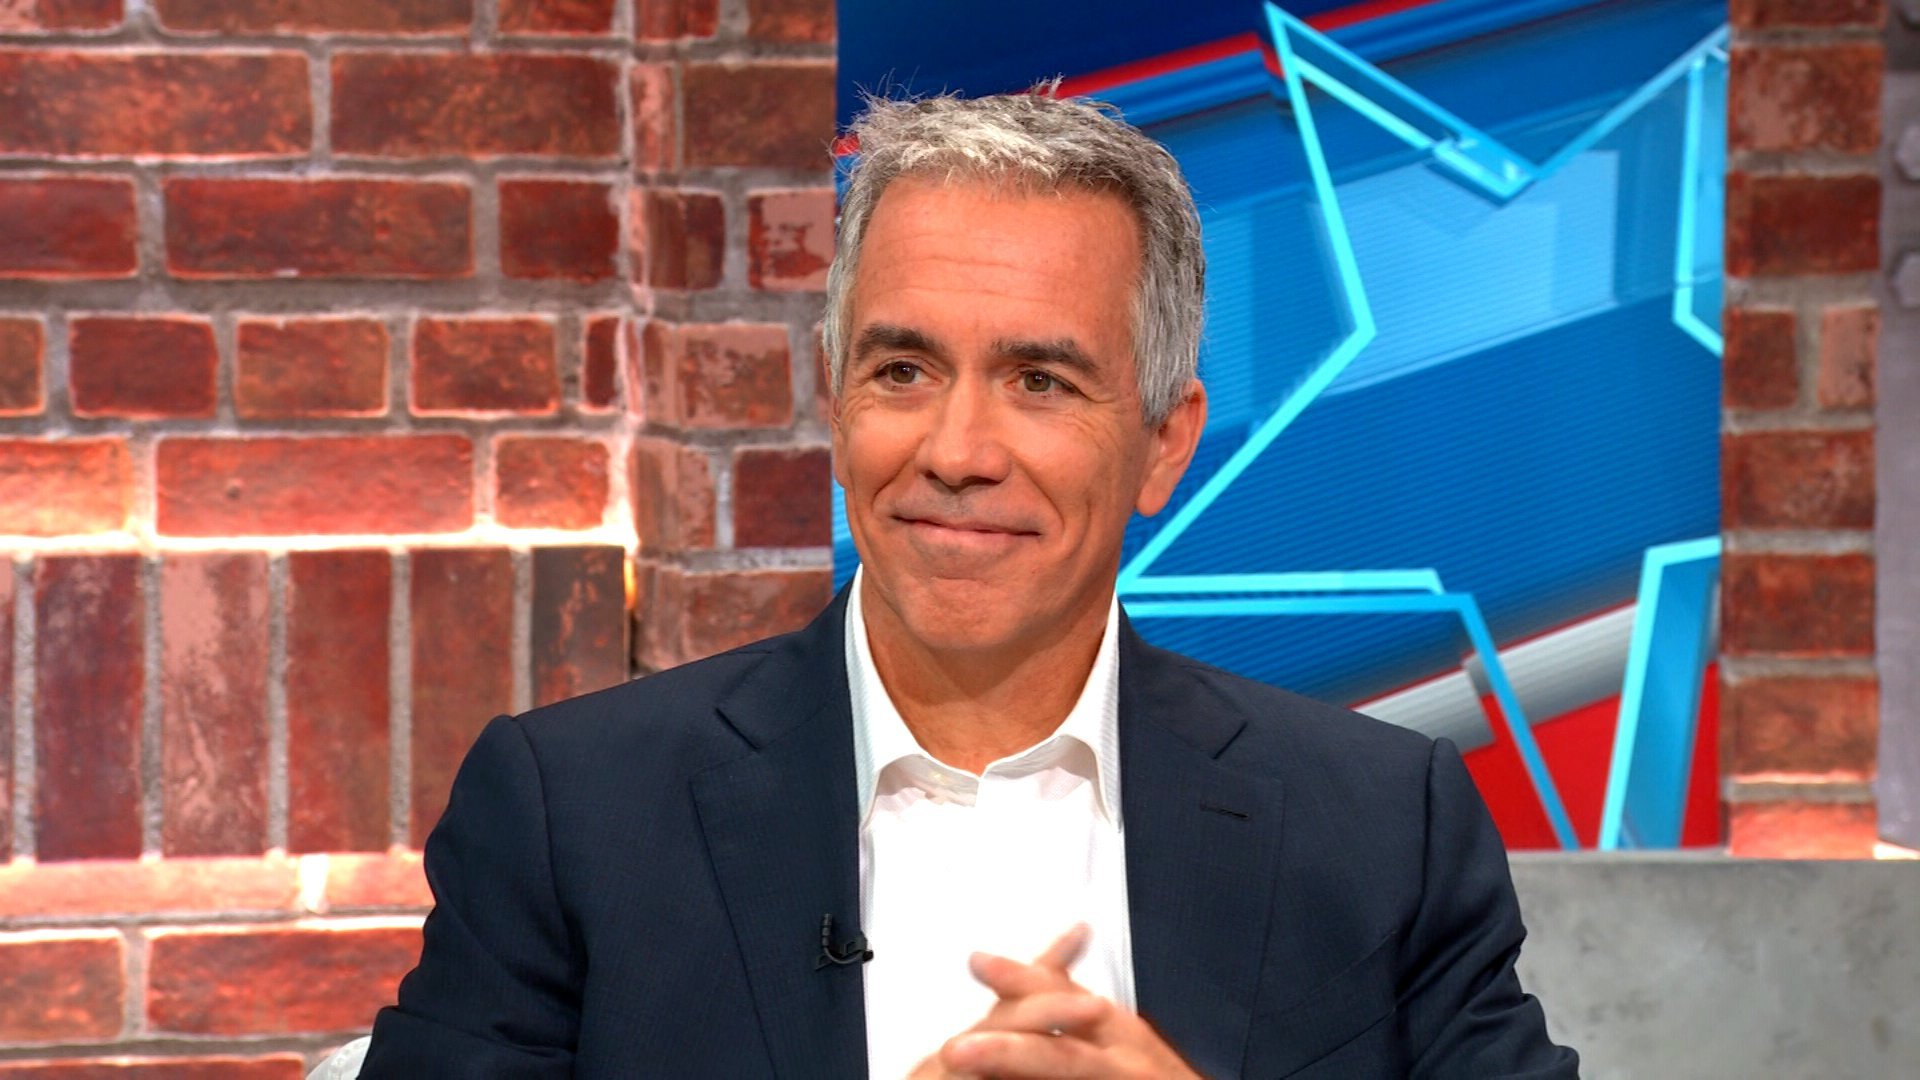 Former Illinois US Rep. Joe Walsh appears on CNN's New Day on Aug. 26, 2019.